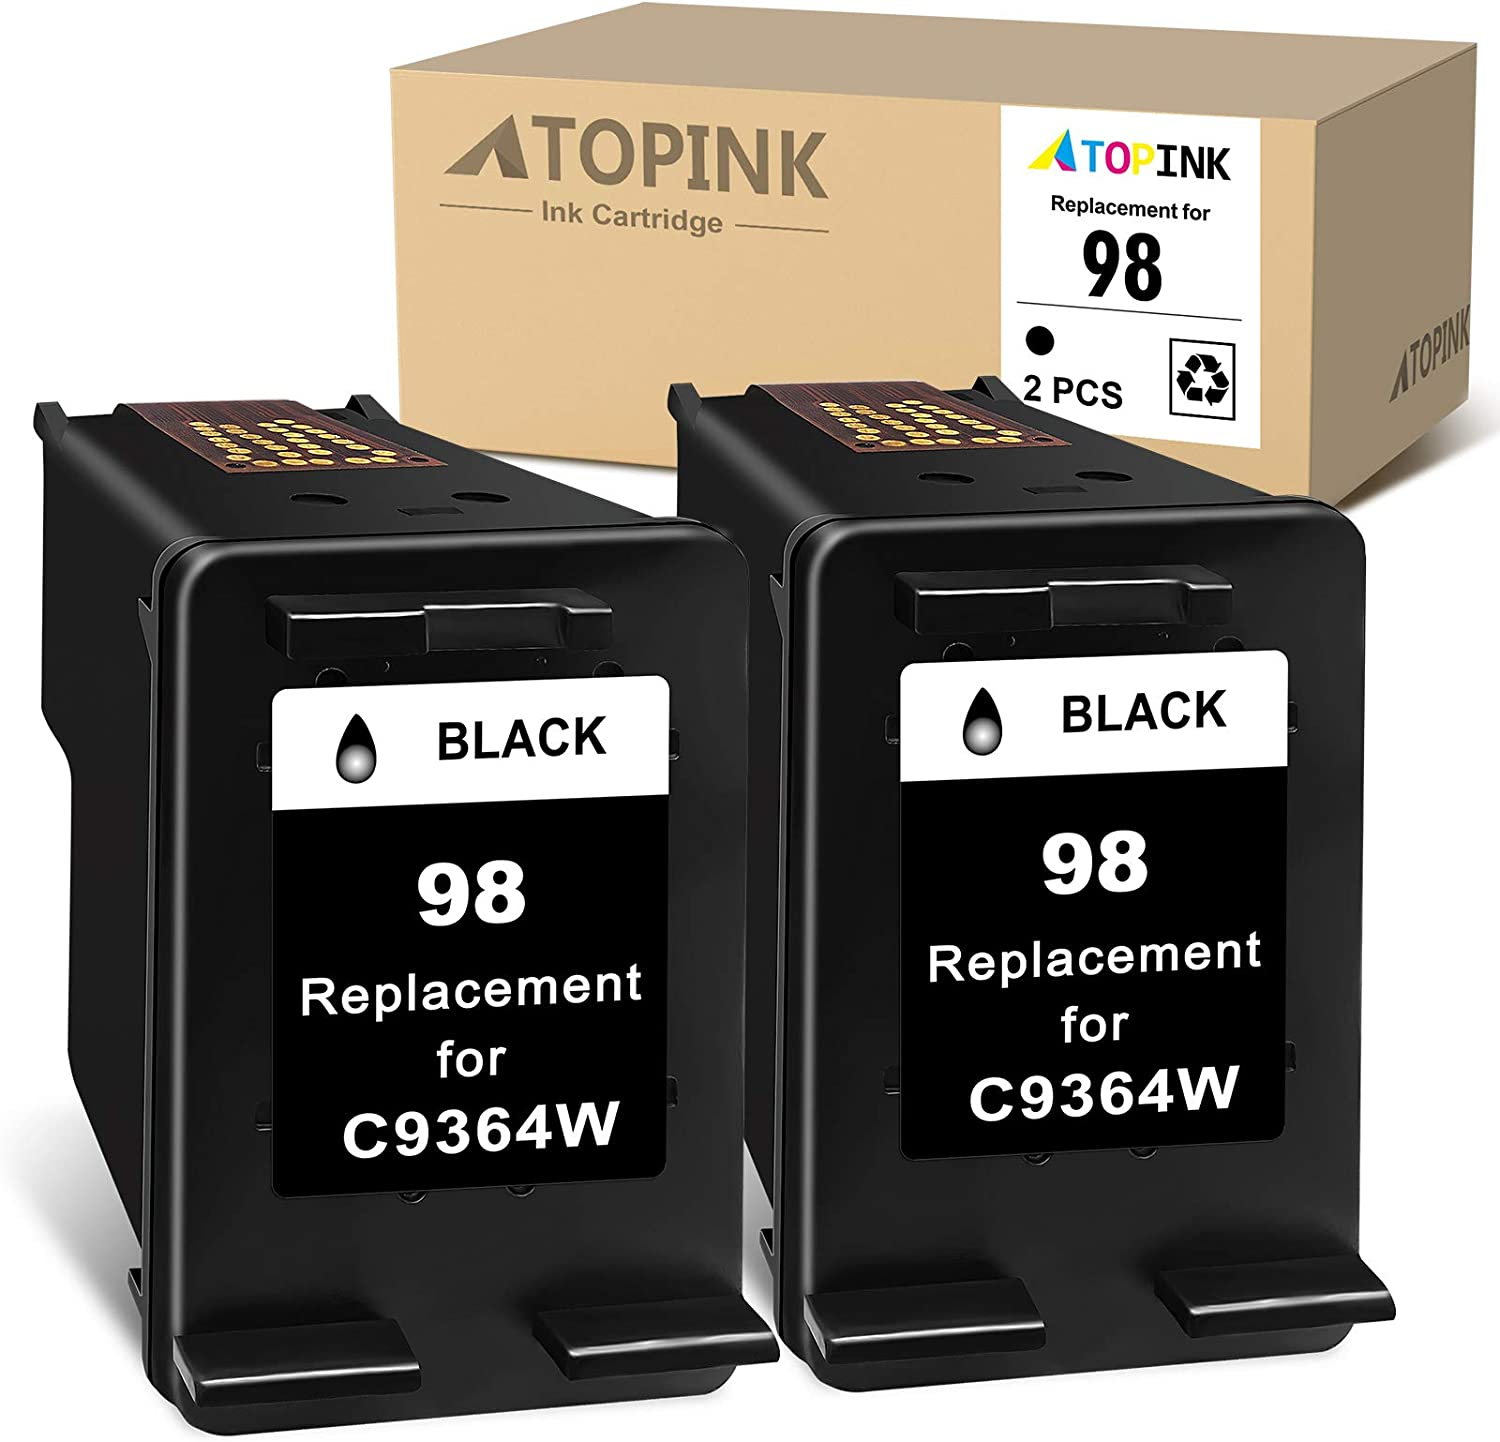 ATOPINK Remanufactured Ink Cartridge Replacement for HP98 98 Work with Photosmart 2610 C3180 8150 2575 8450 2710 8750 2608 Deskjet 9800 5740 6540 6840 6520 6620 Officejet 6210 Printer (2 Black)